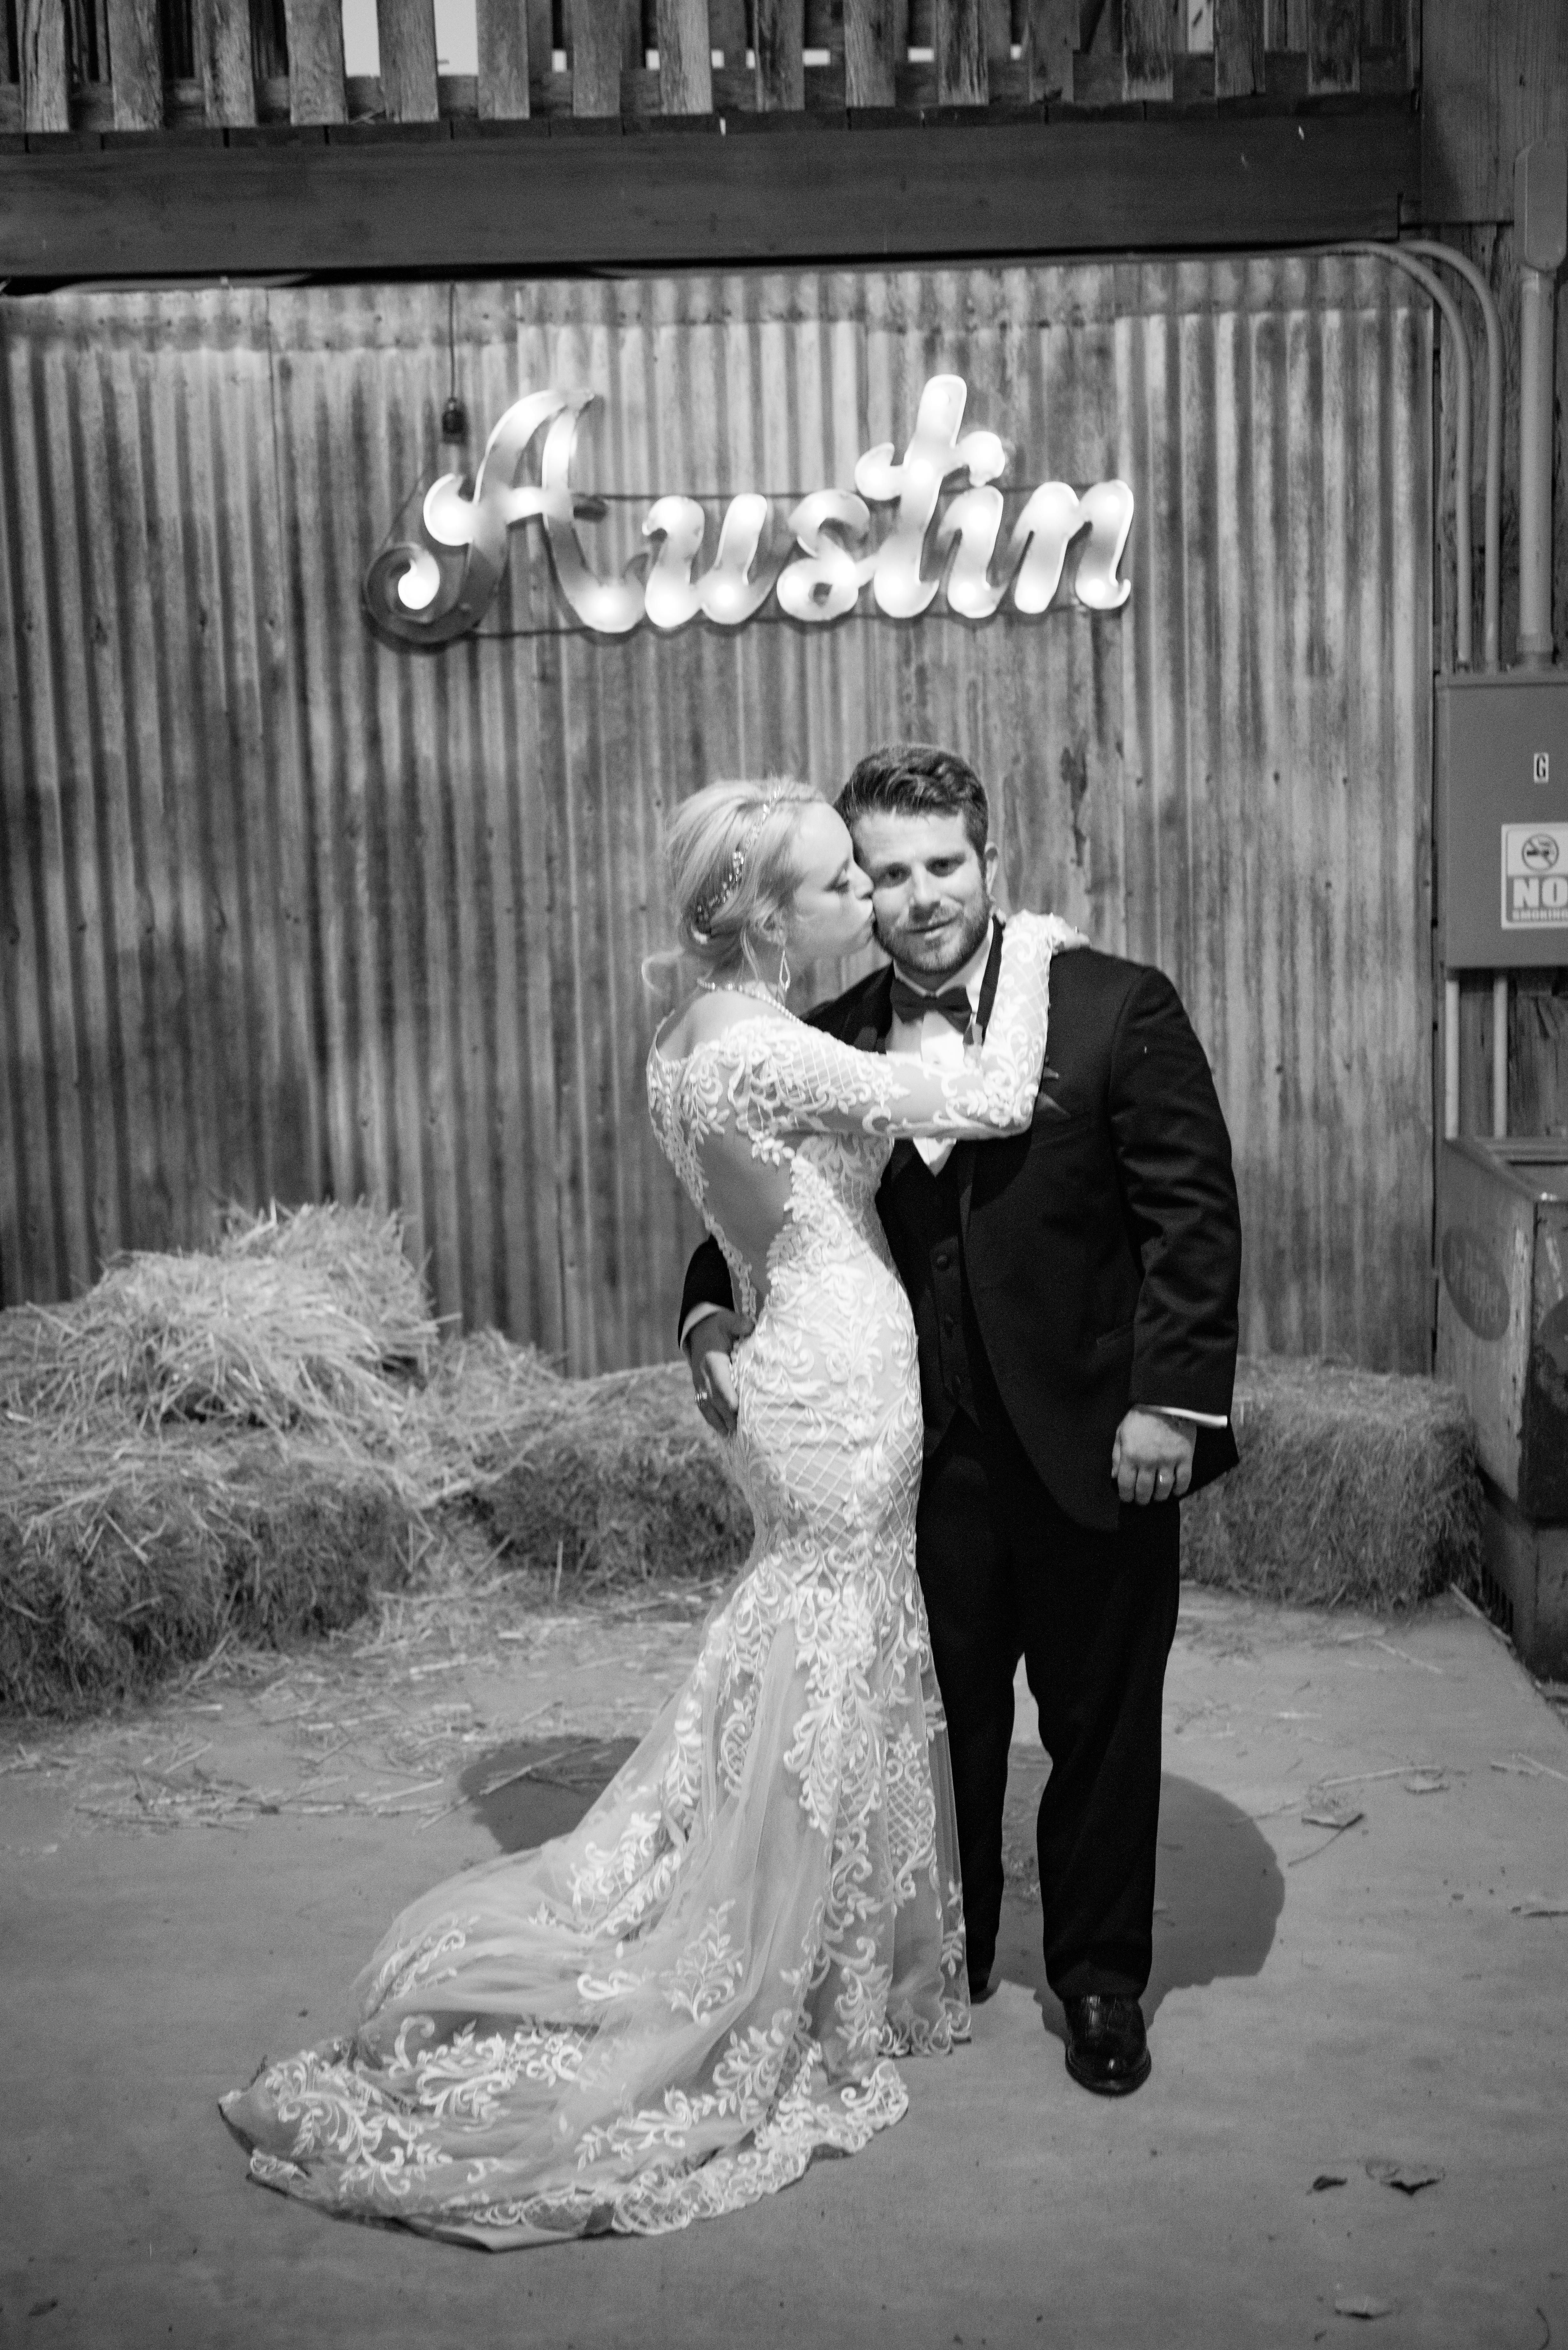 Getting married in texas hill country in 2020 getting